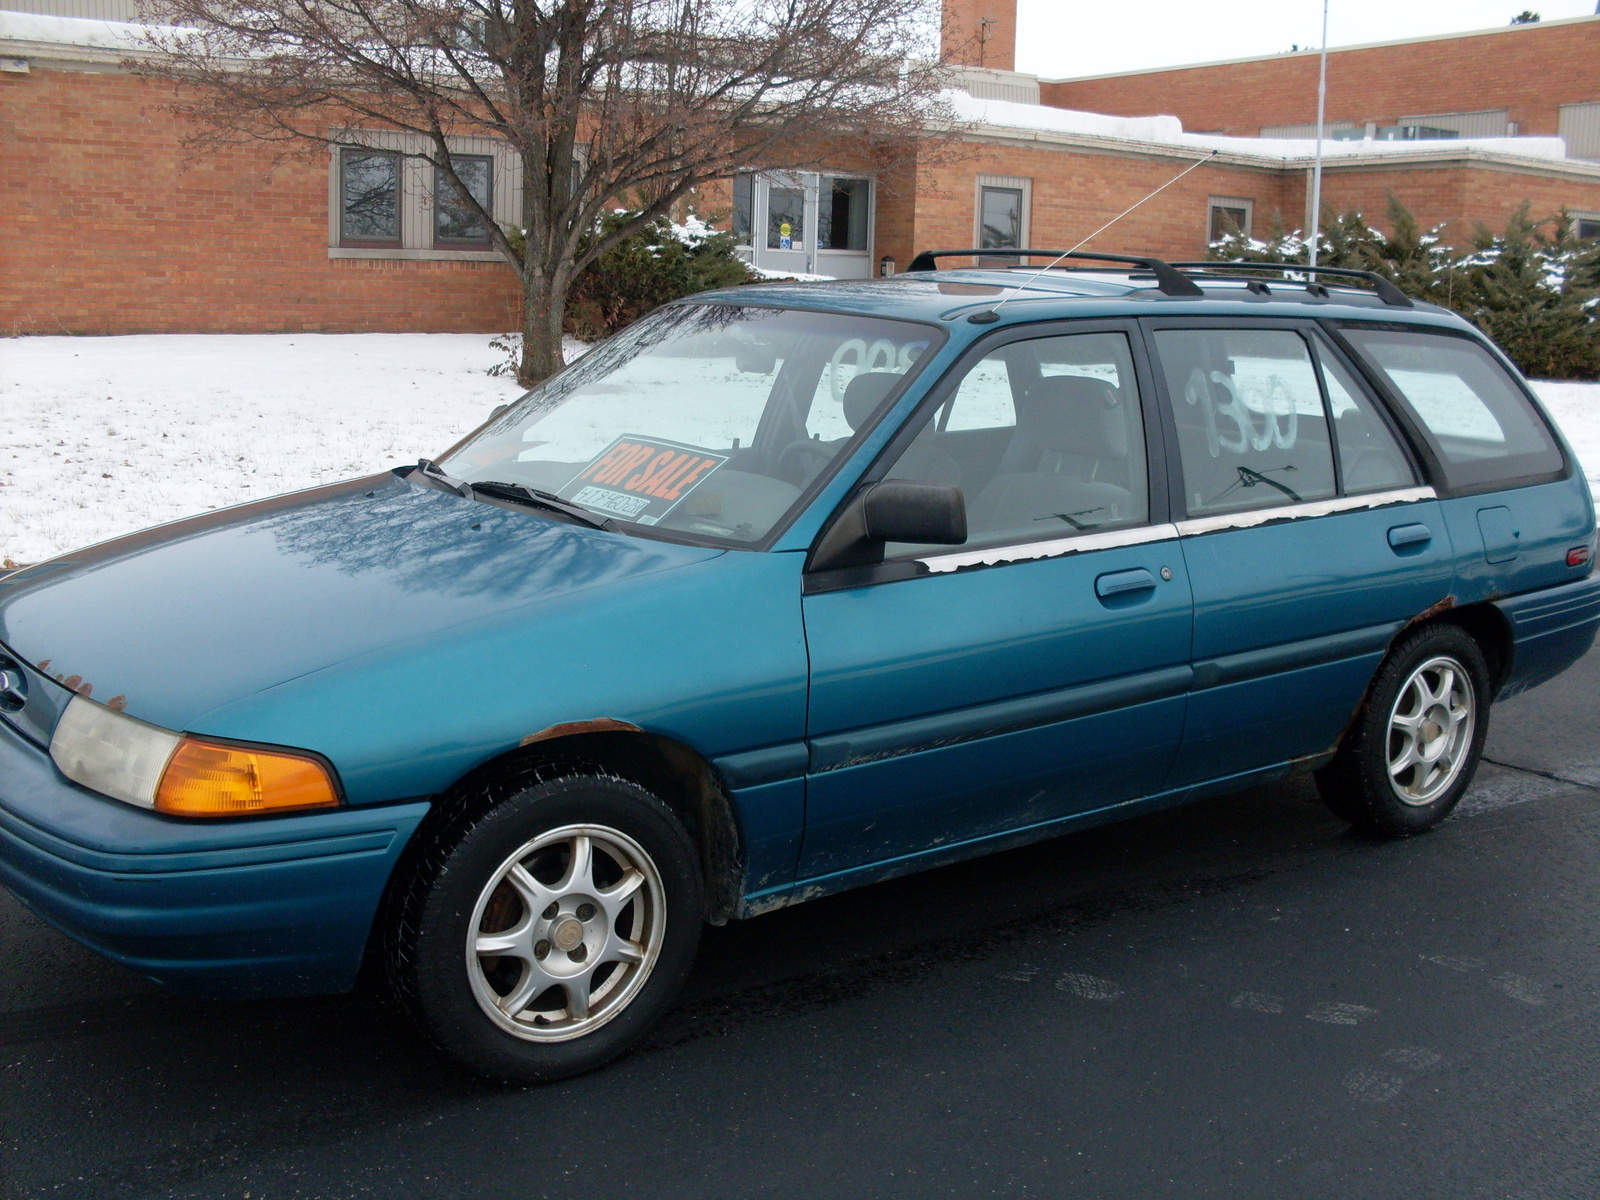 Escort 1998 value ford